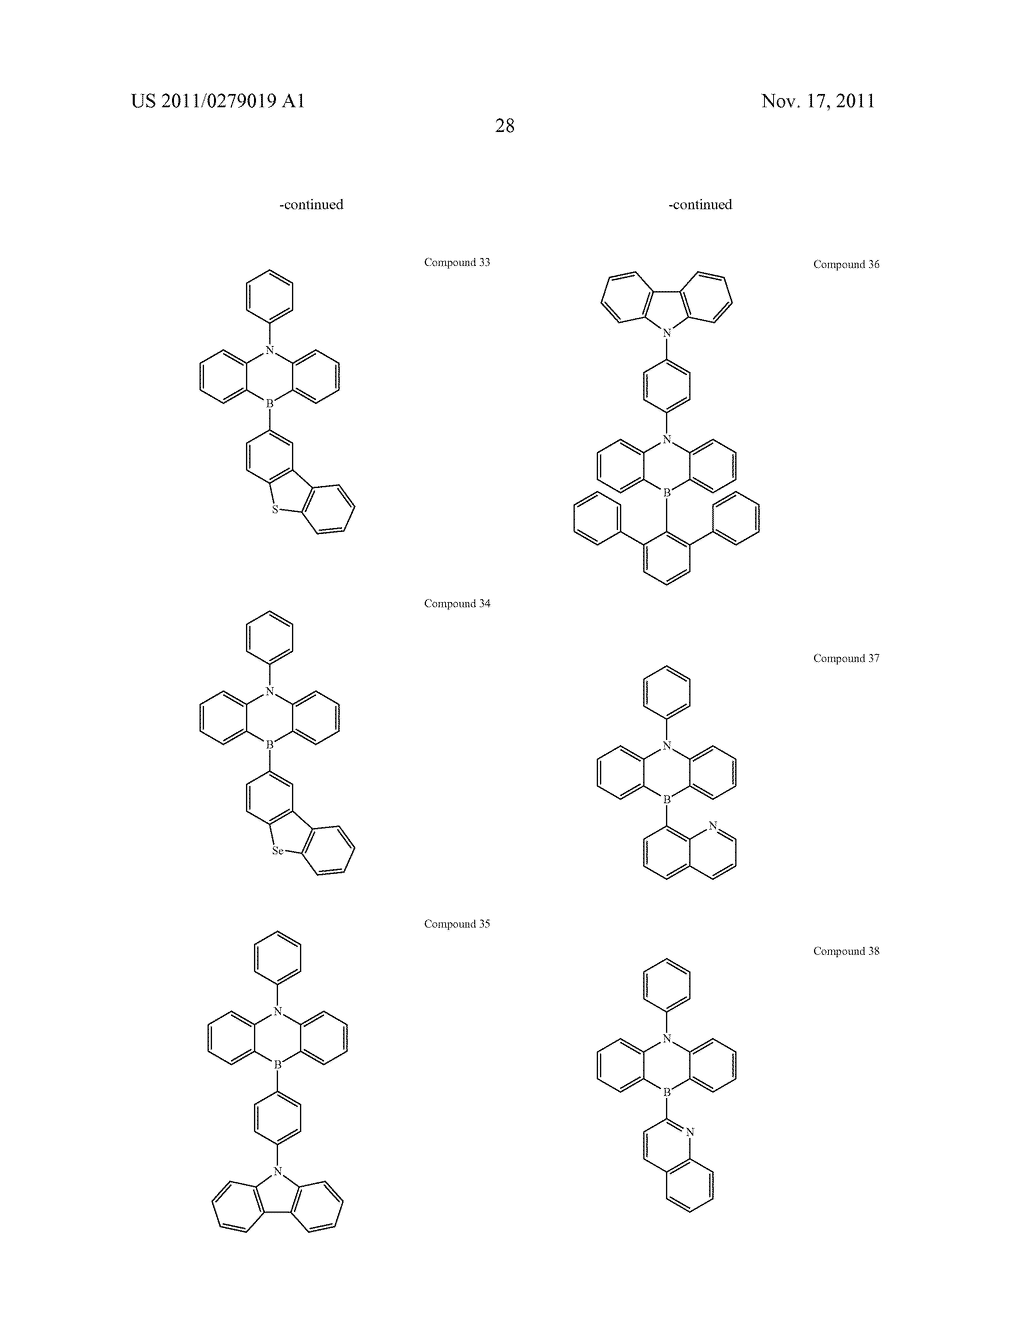 AZABORININE COMPOUNDS AS HOST MATERIALS AND DOPANTS FOR PHOLEDS - diagram, schematic, and image 35